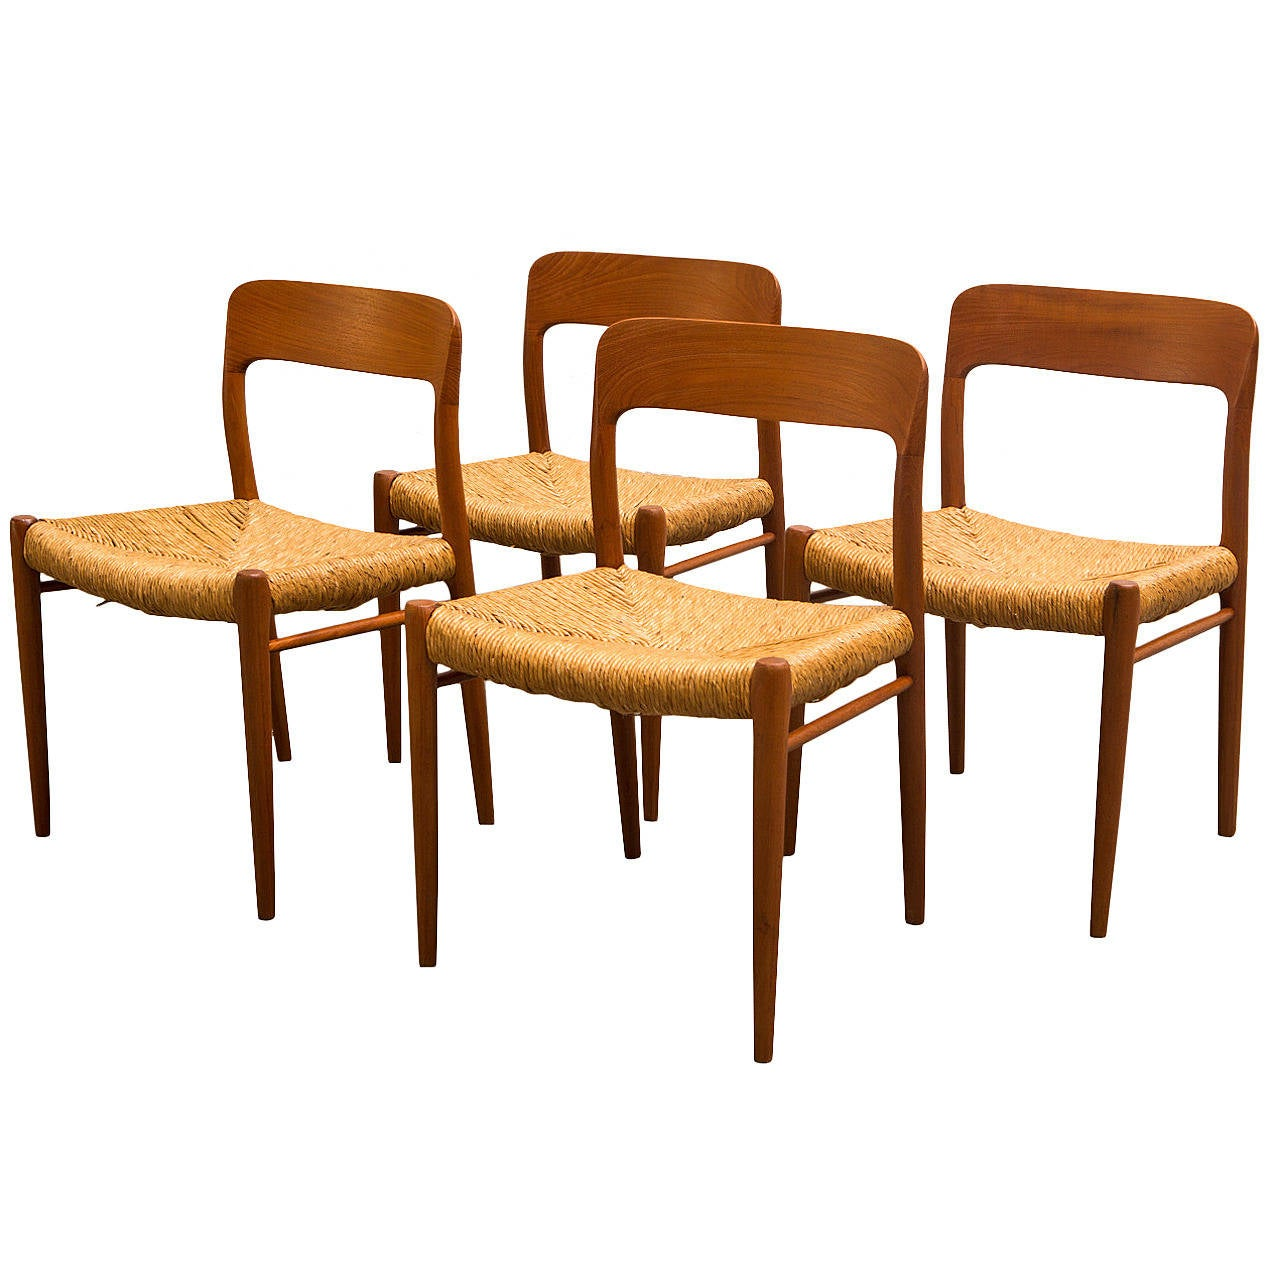 Set Of Four Niels Moller Model 75 Teak Dining Chairs With Rush Seating For Sale